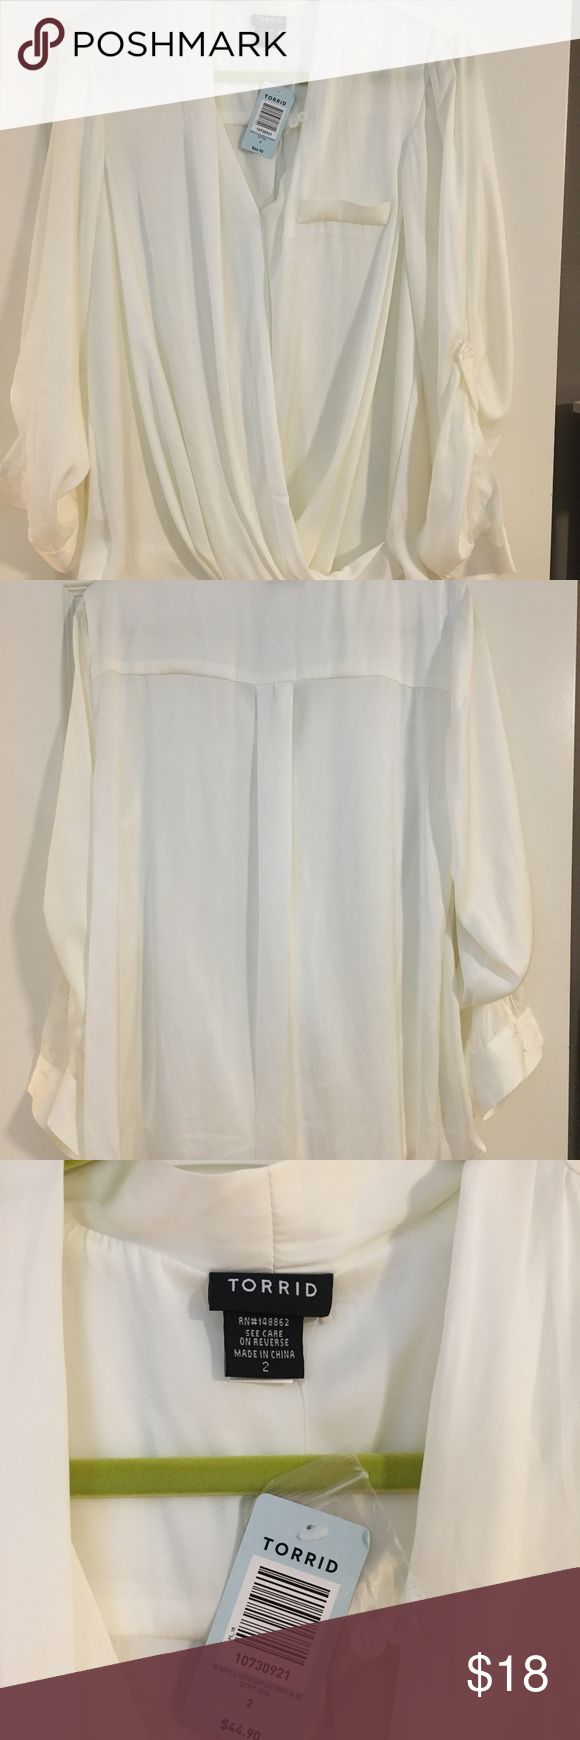 Torrid dressy white blouse Sz 2 Torrid dressy white blouse Sz 2 long sleeve, but can also be rolled up and fastened w/ button draping in front of shirt high/low cut torrid Tops Blouses